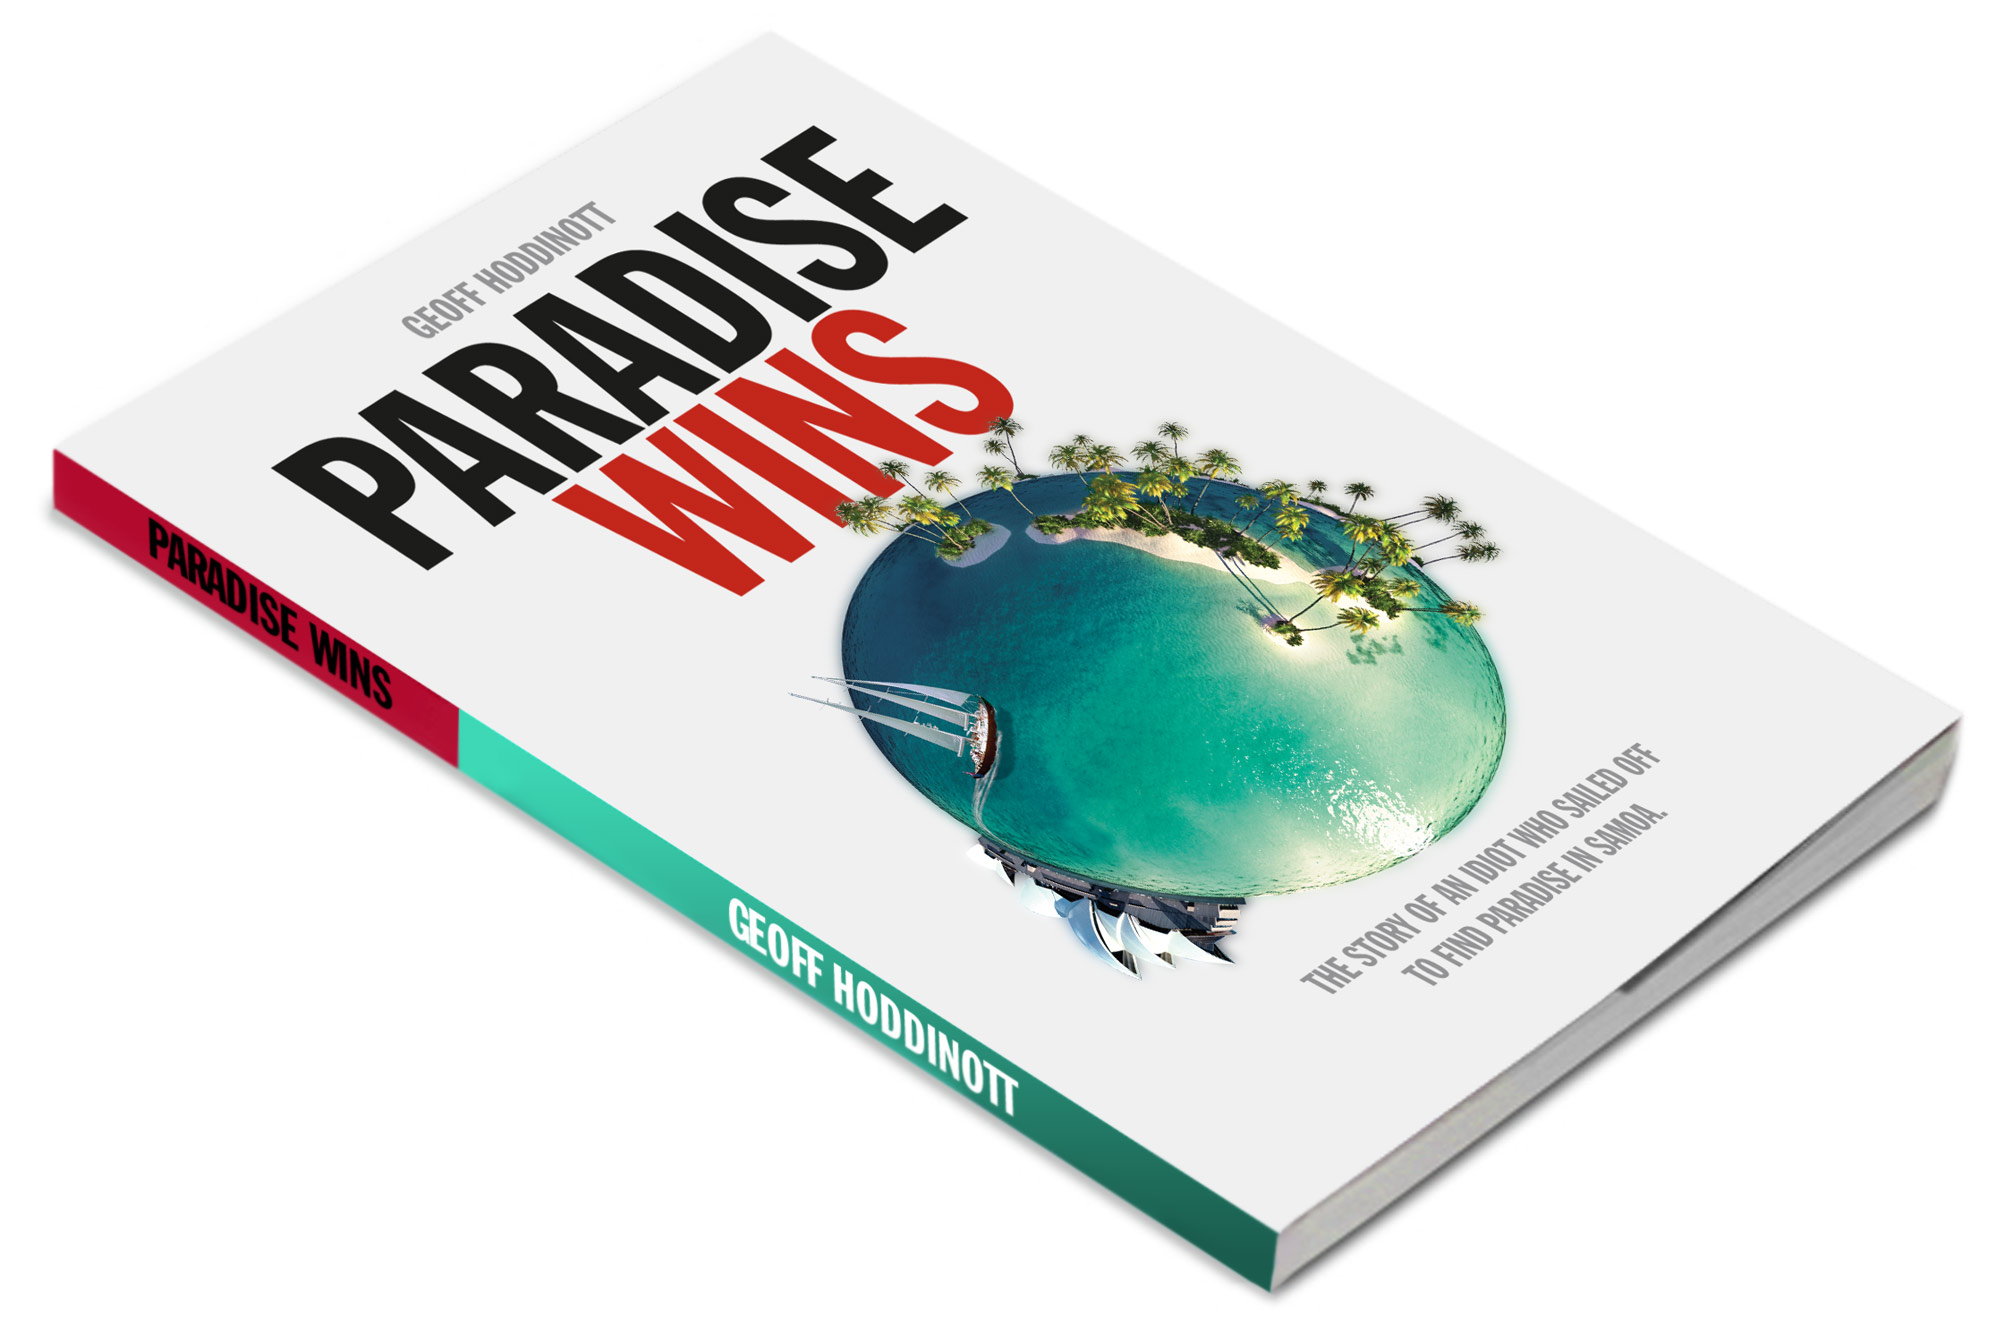 Stephen Wright Paradise Paradise Wins Book Cover Design